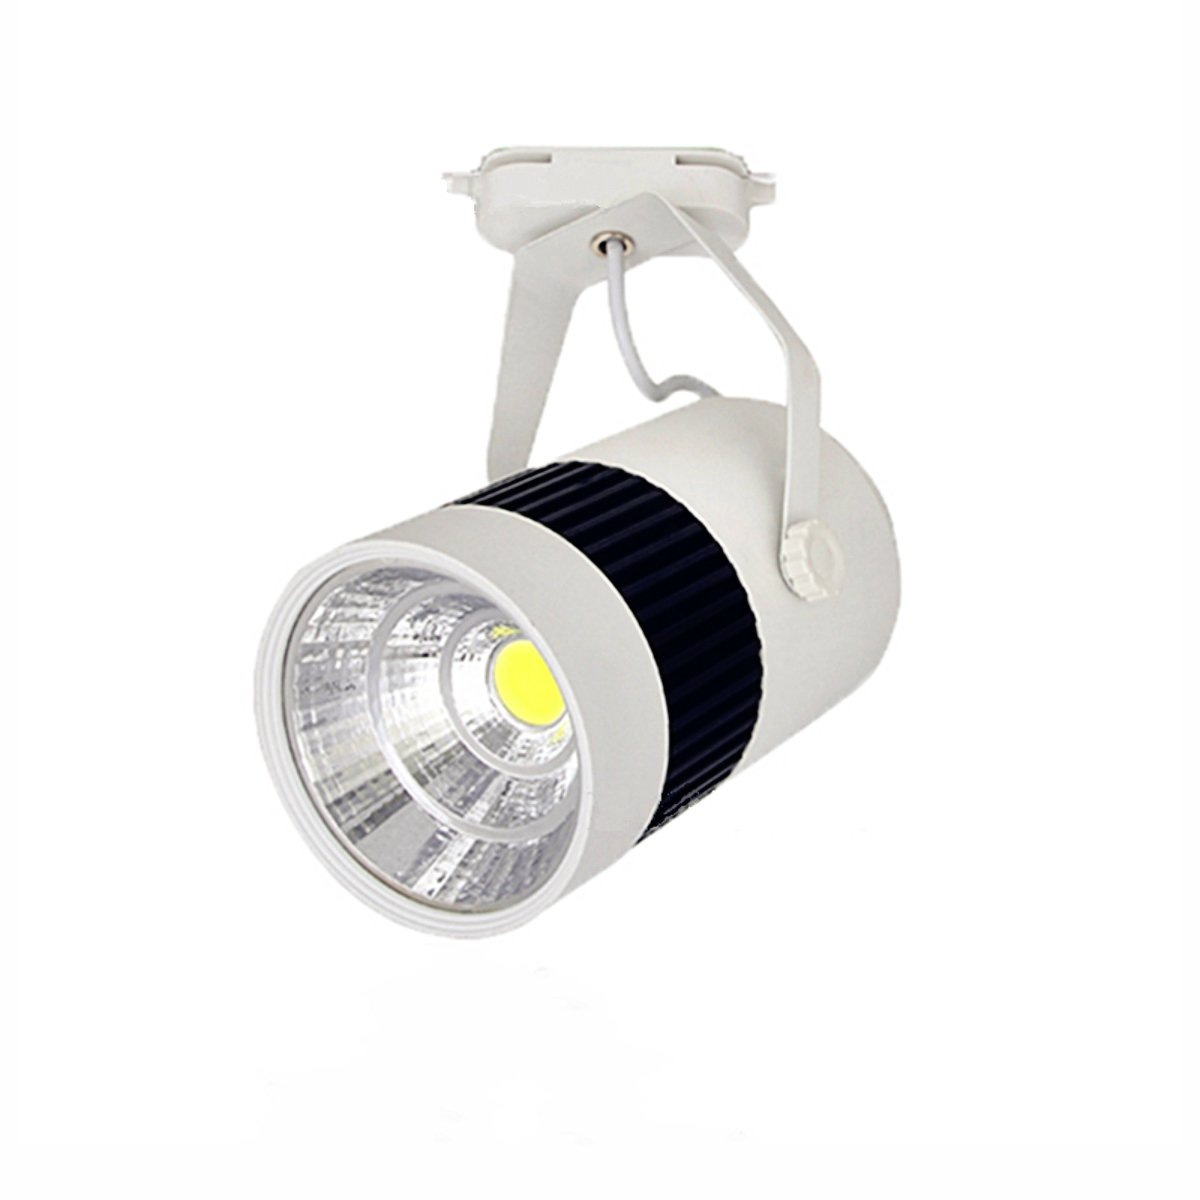 Toika 20W LED Cob Track Light for Home/store/shoping malls lighting lamp Spot Light, Warm White (3000K-3200K) AC85-265V - 10pcs